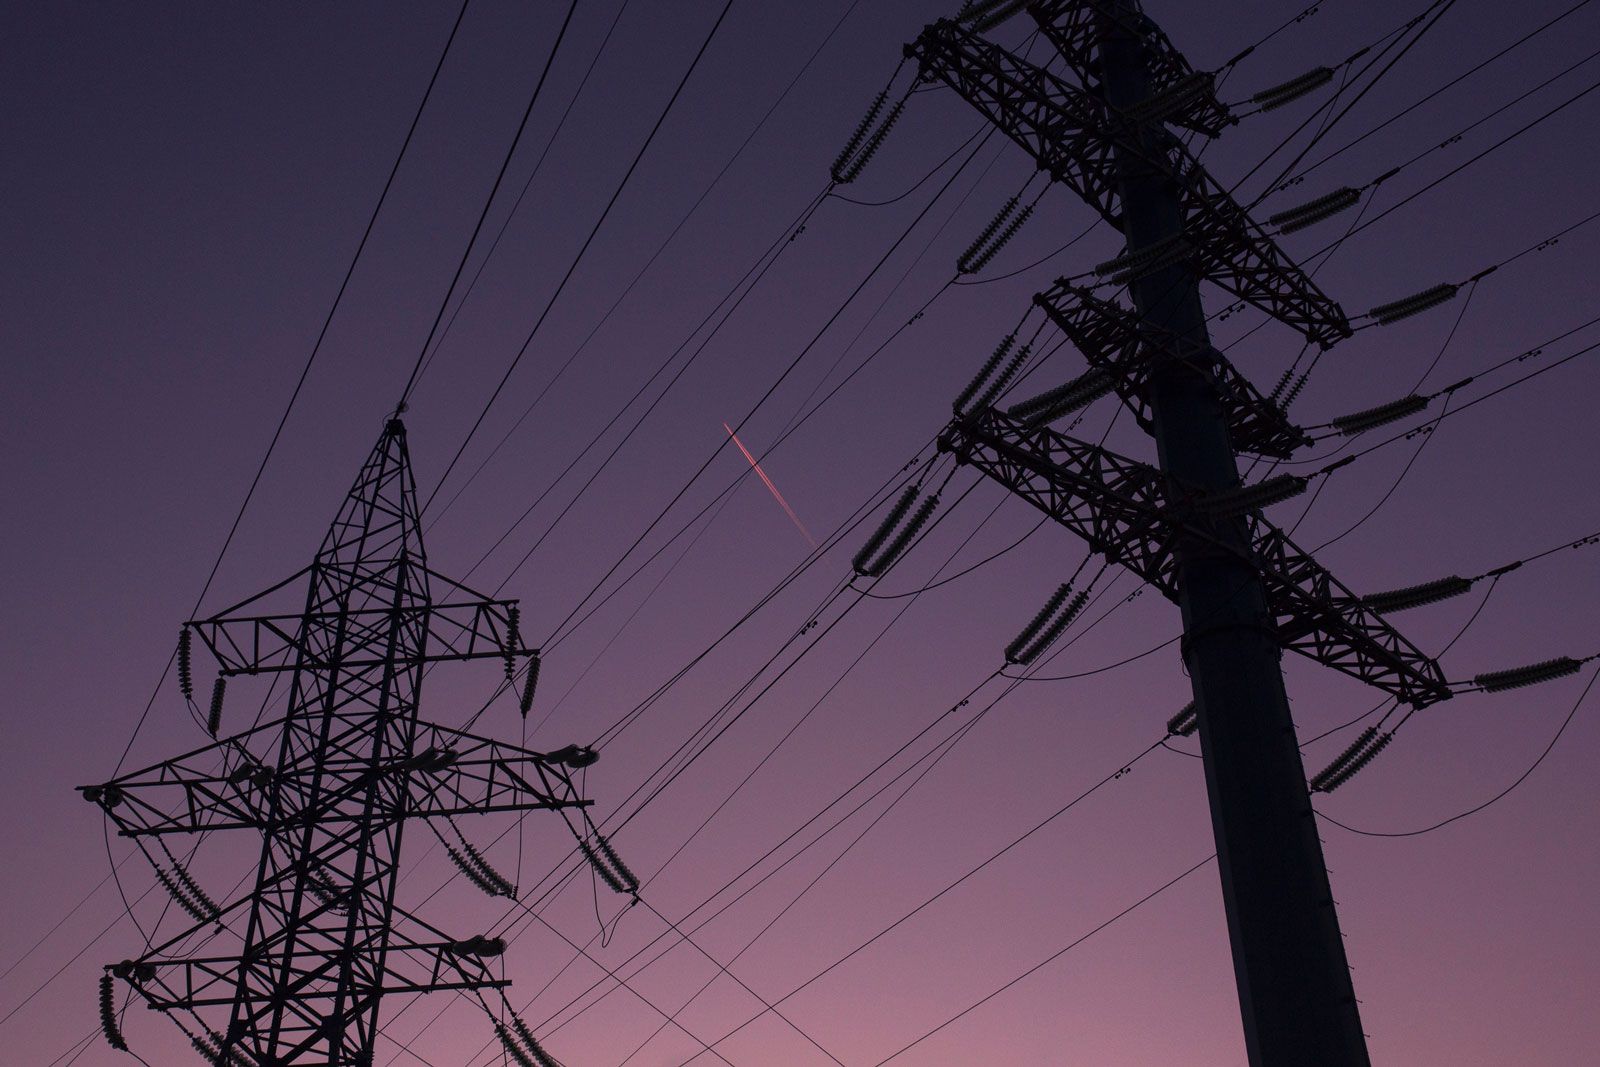 power lines at dusk